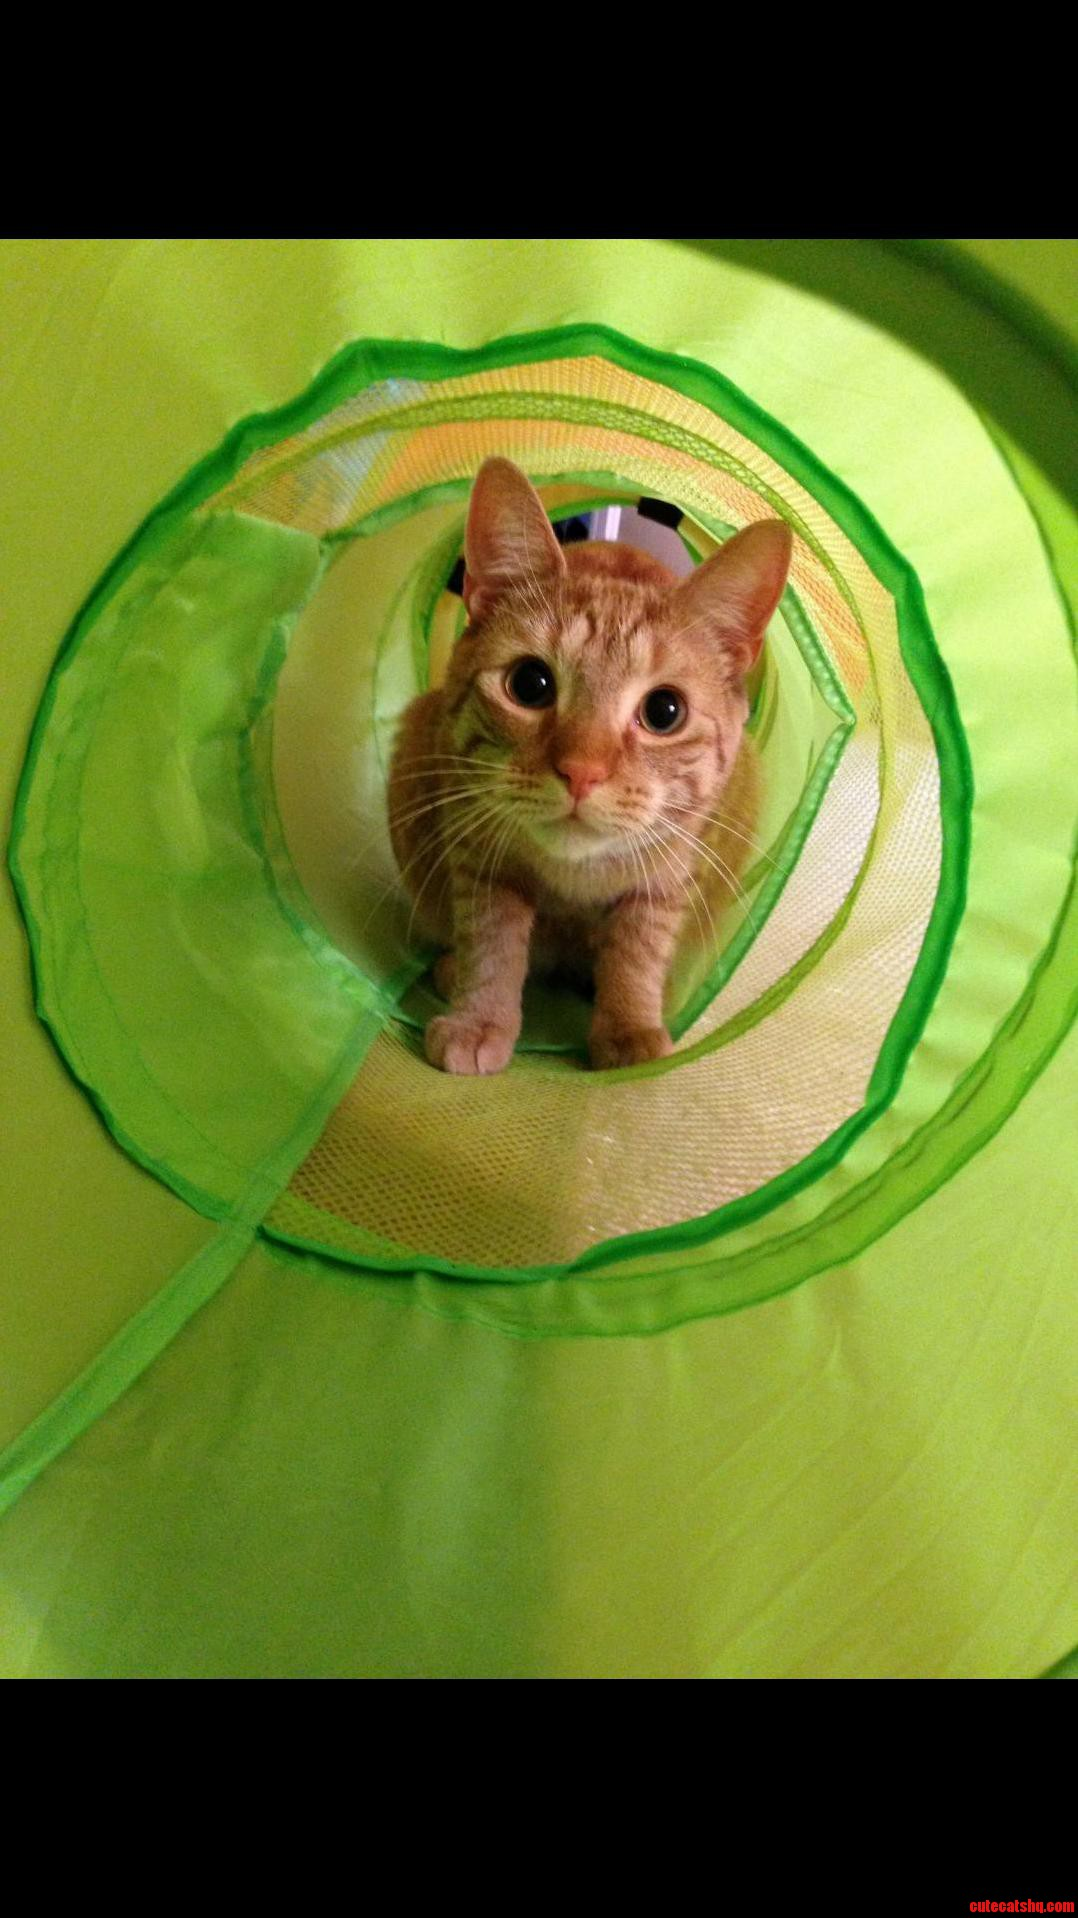 Ollie exploring his new tunnel